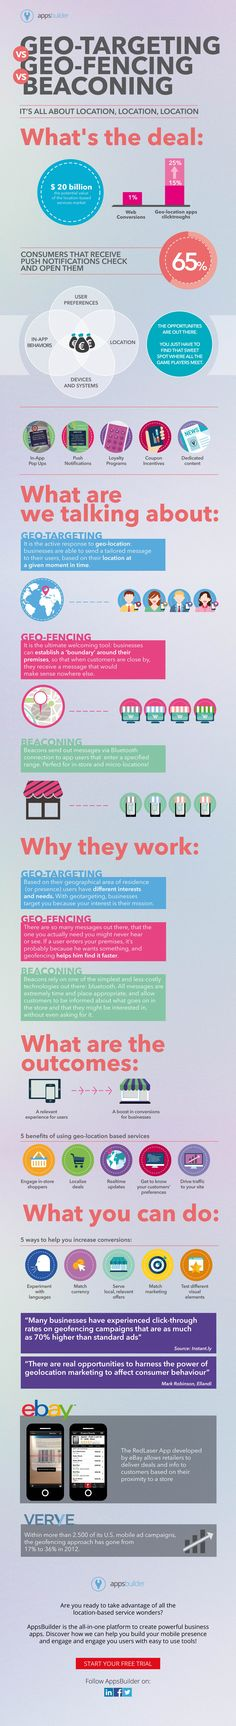 Geotargeting Vs. Geofencing Vs. Beaconing: the art of nailing time and place #INFOGRAPHIC #Ibeacon